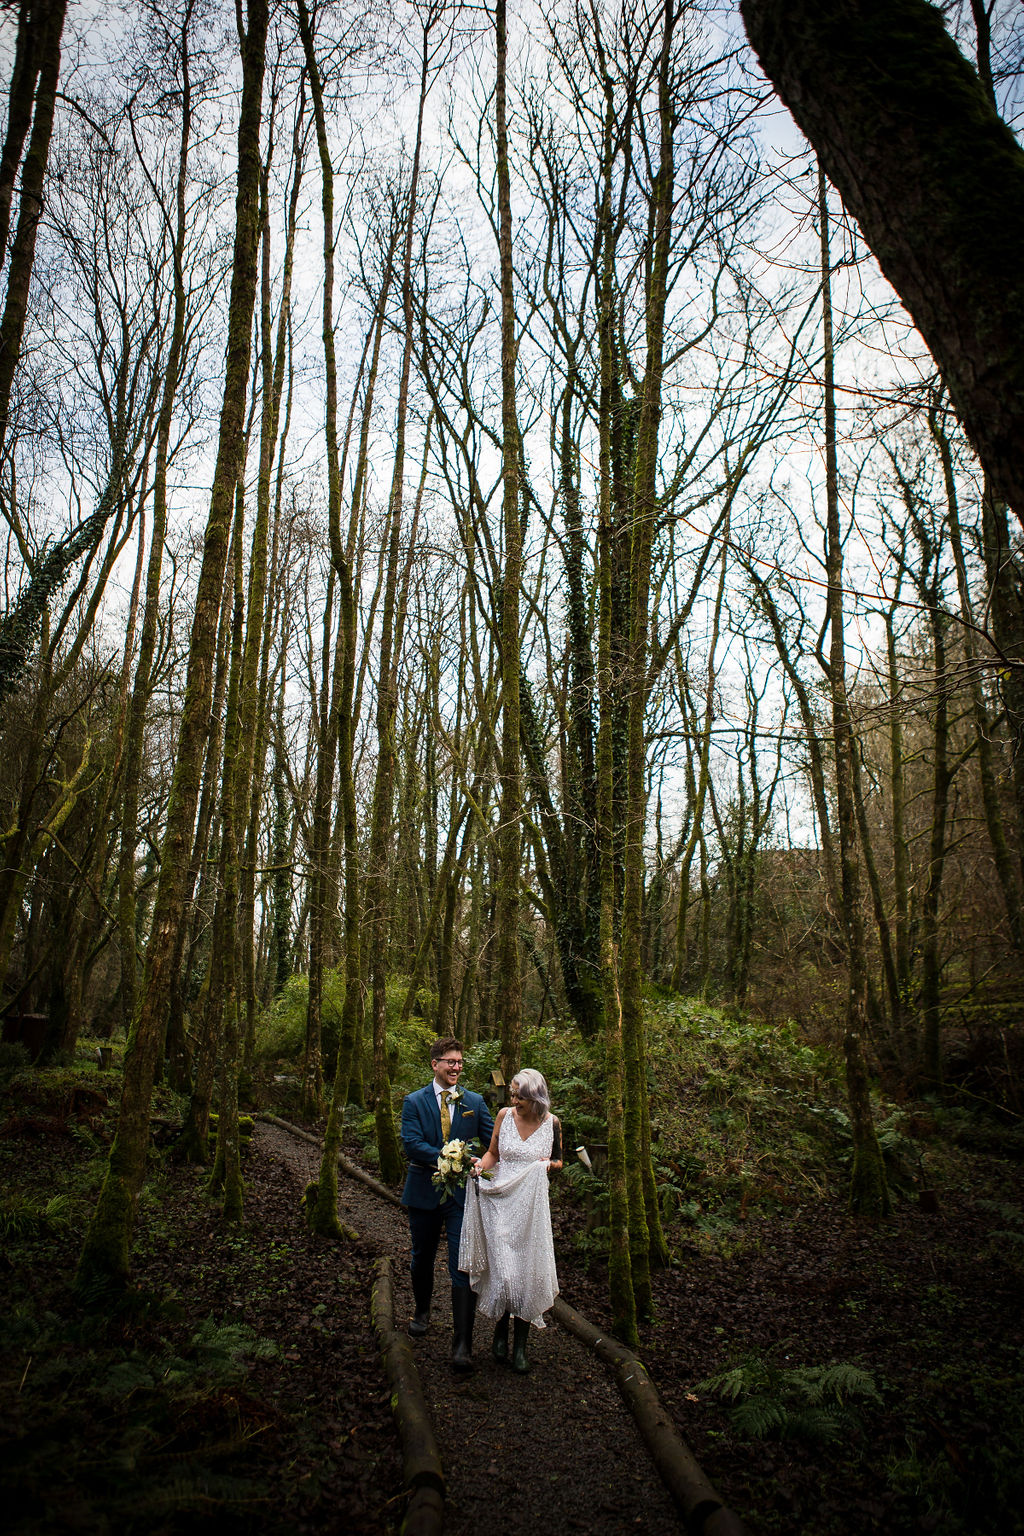 winter elopement - simple wedding - pandemic wedding - small wedding - unconventional wedding - bride and groom in forest